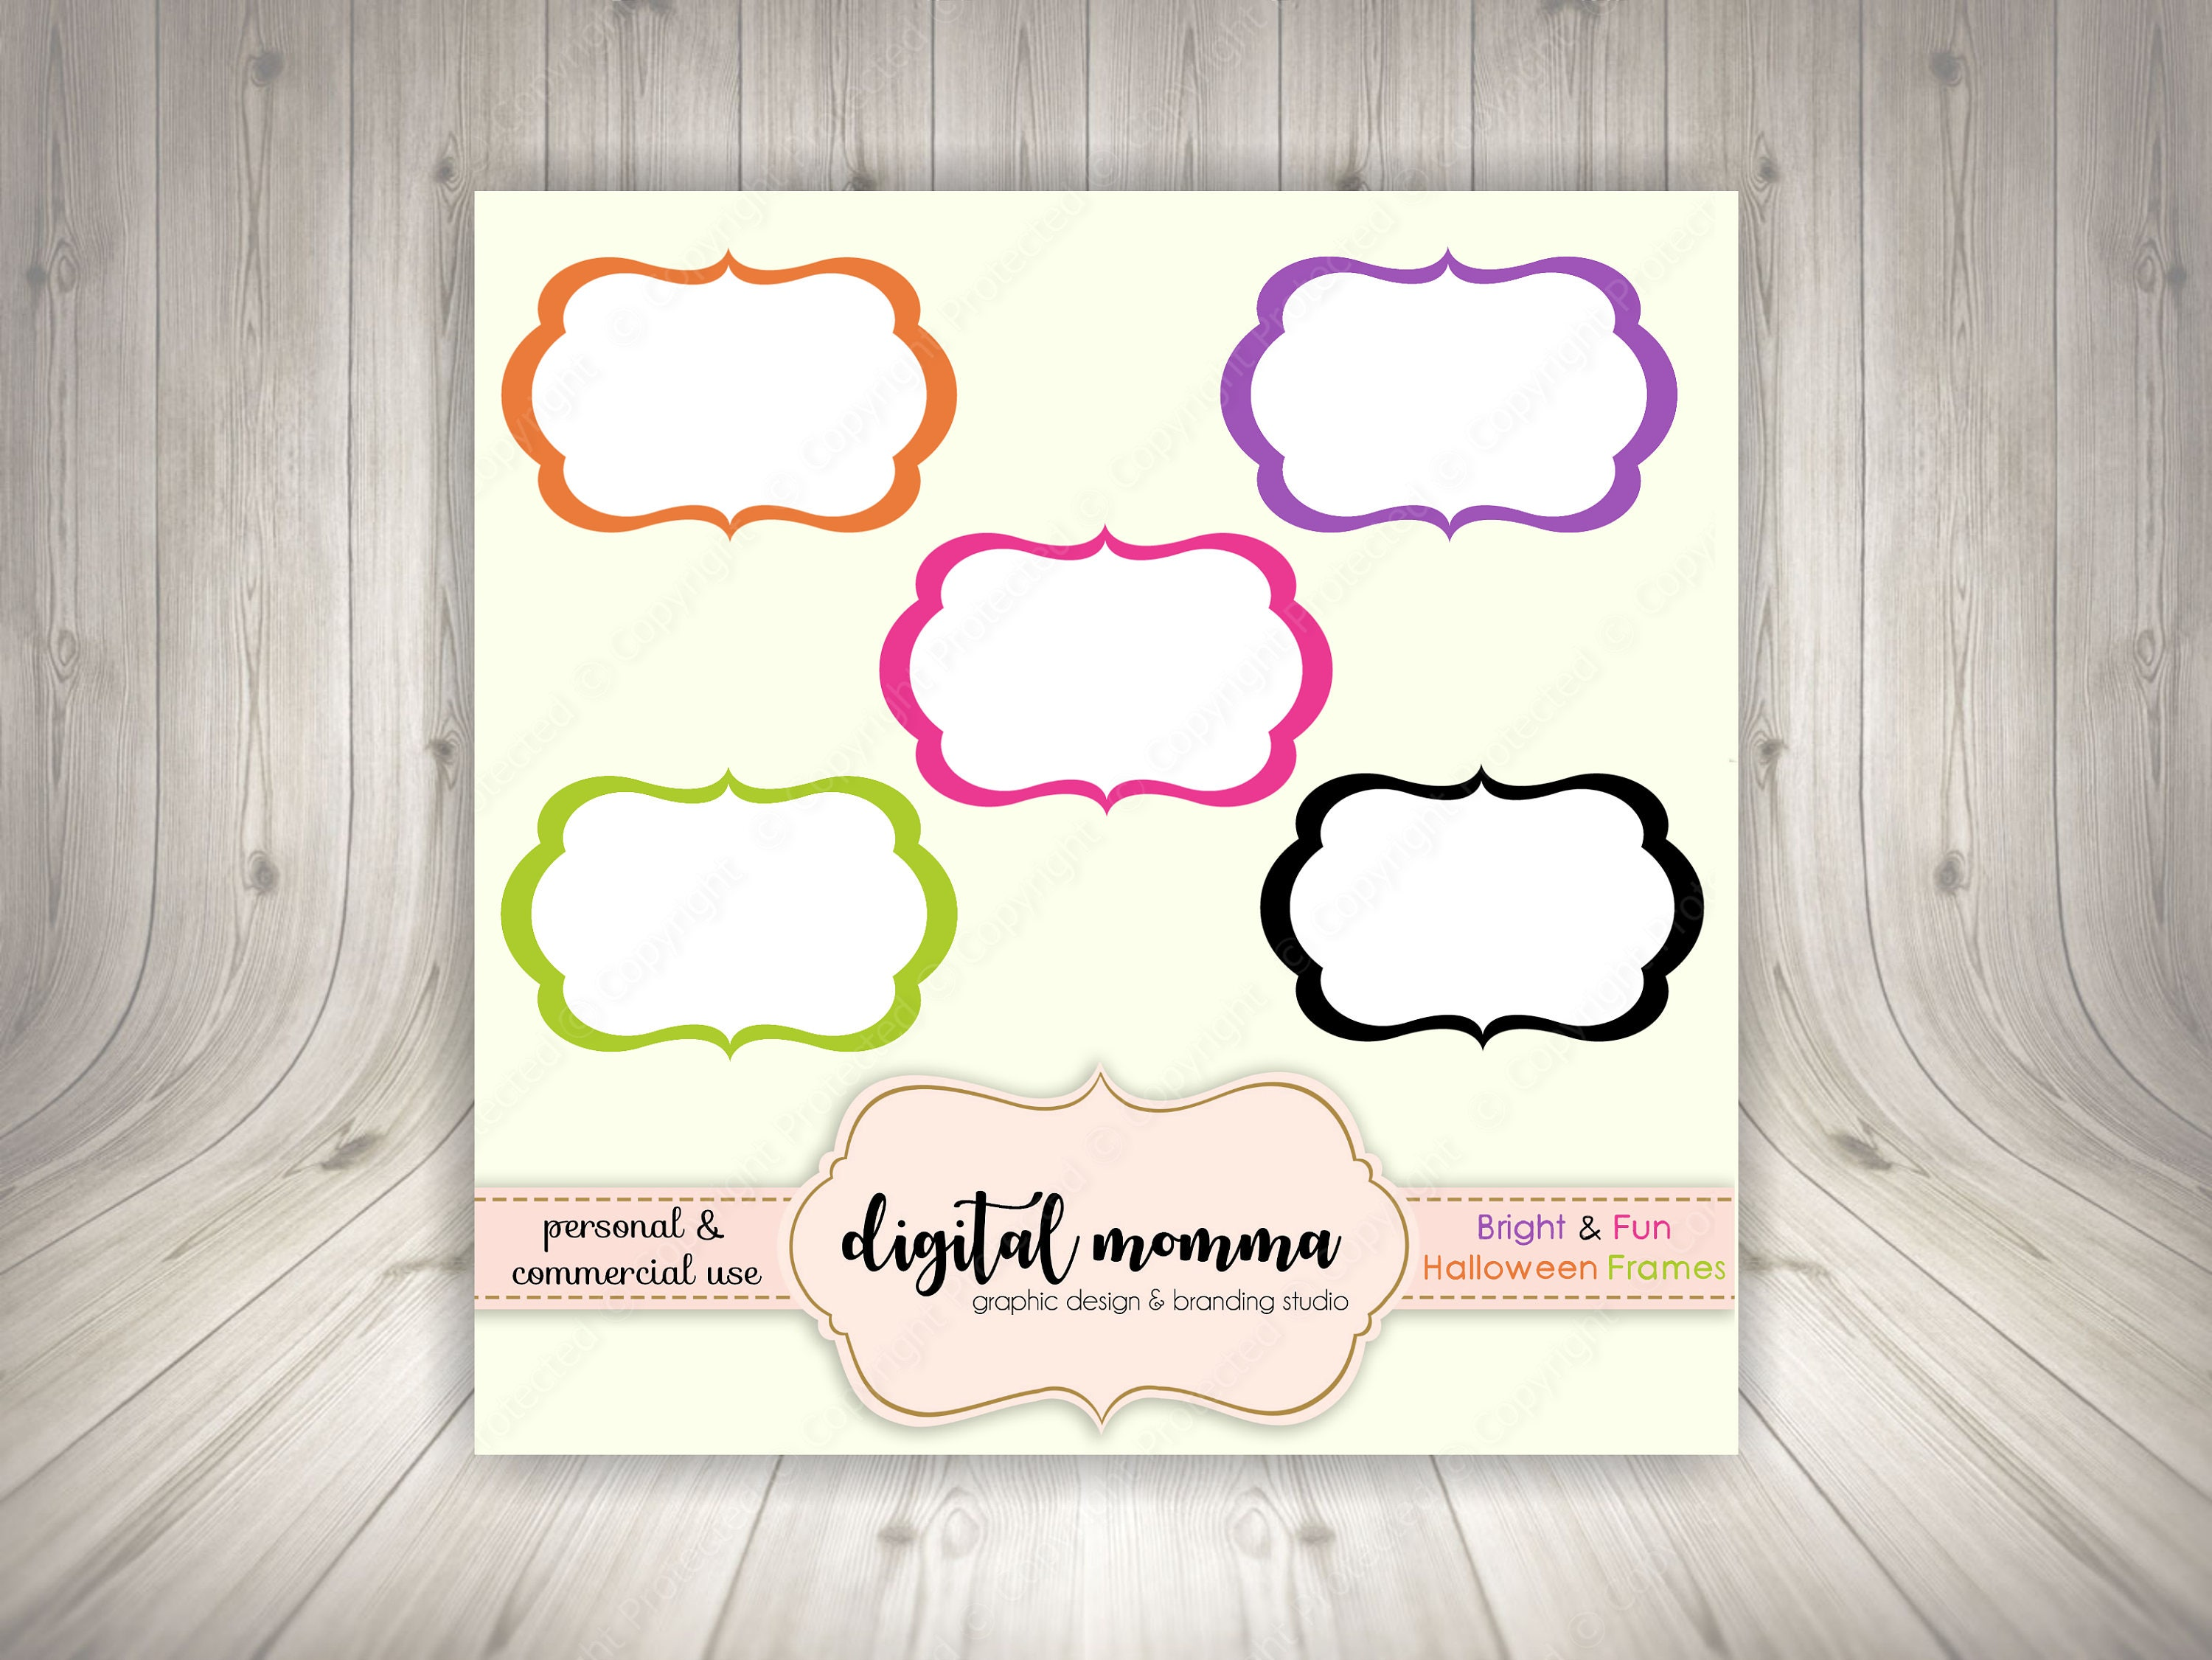 Bright & Fun Halloween Color Frames White Insert Transparent